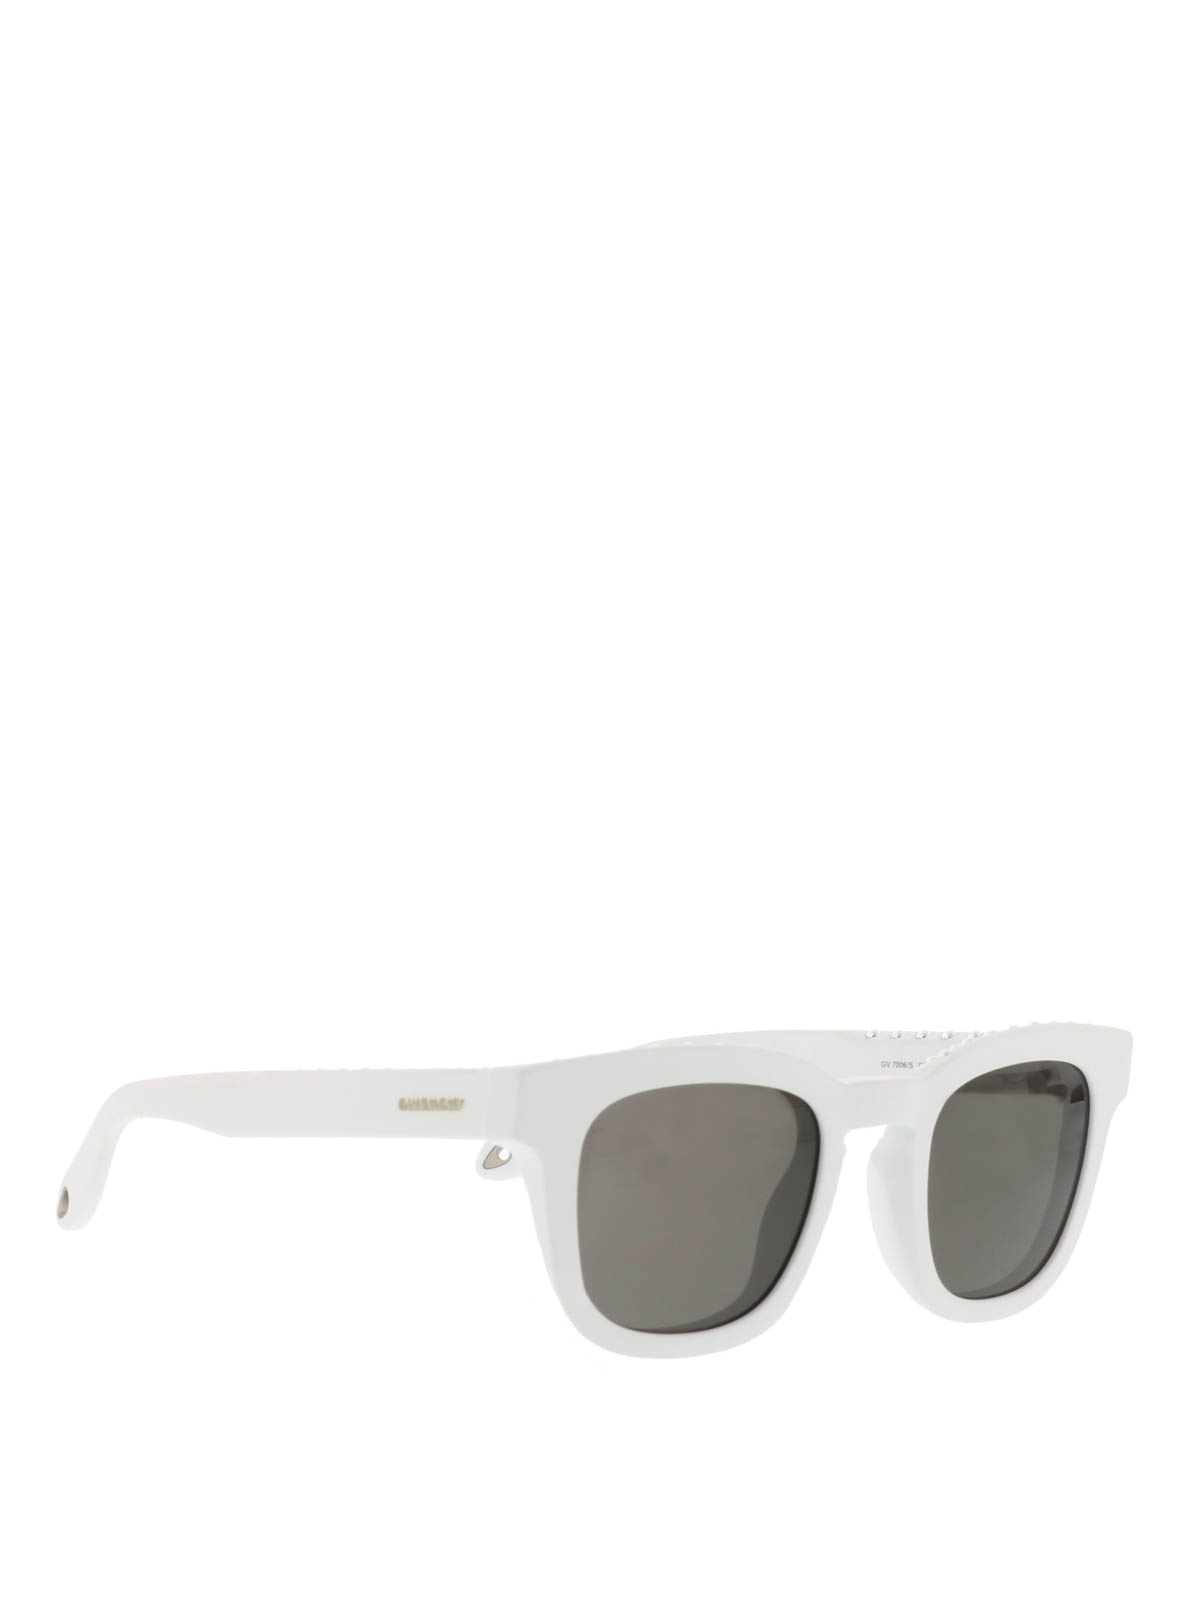 8451c8a7df Givenchy - Micro studs embellished sunglasses - sunglasses ...